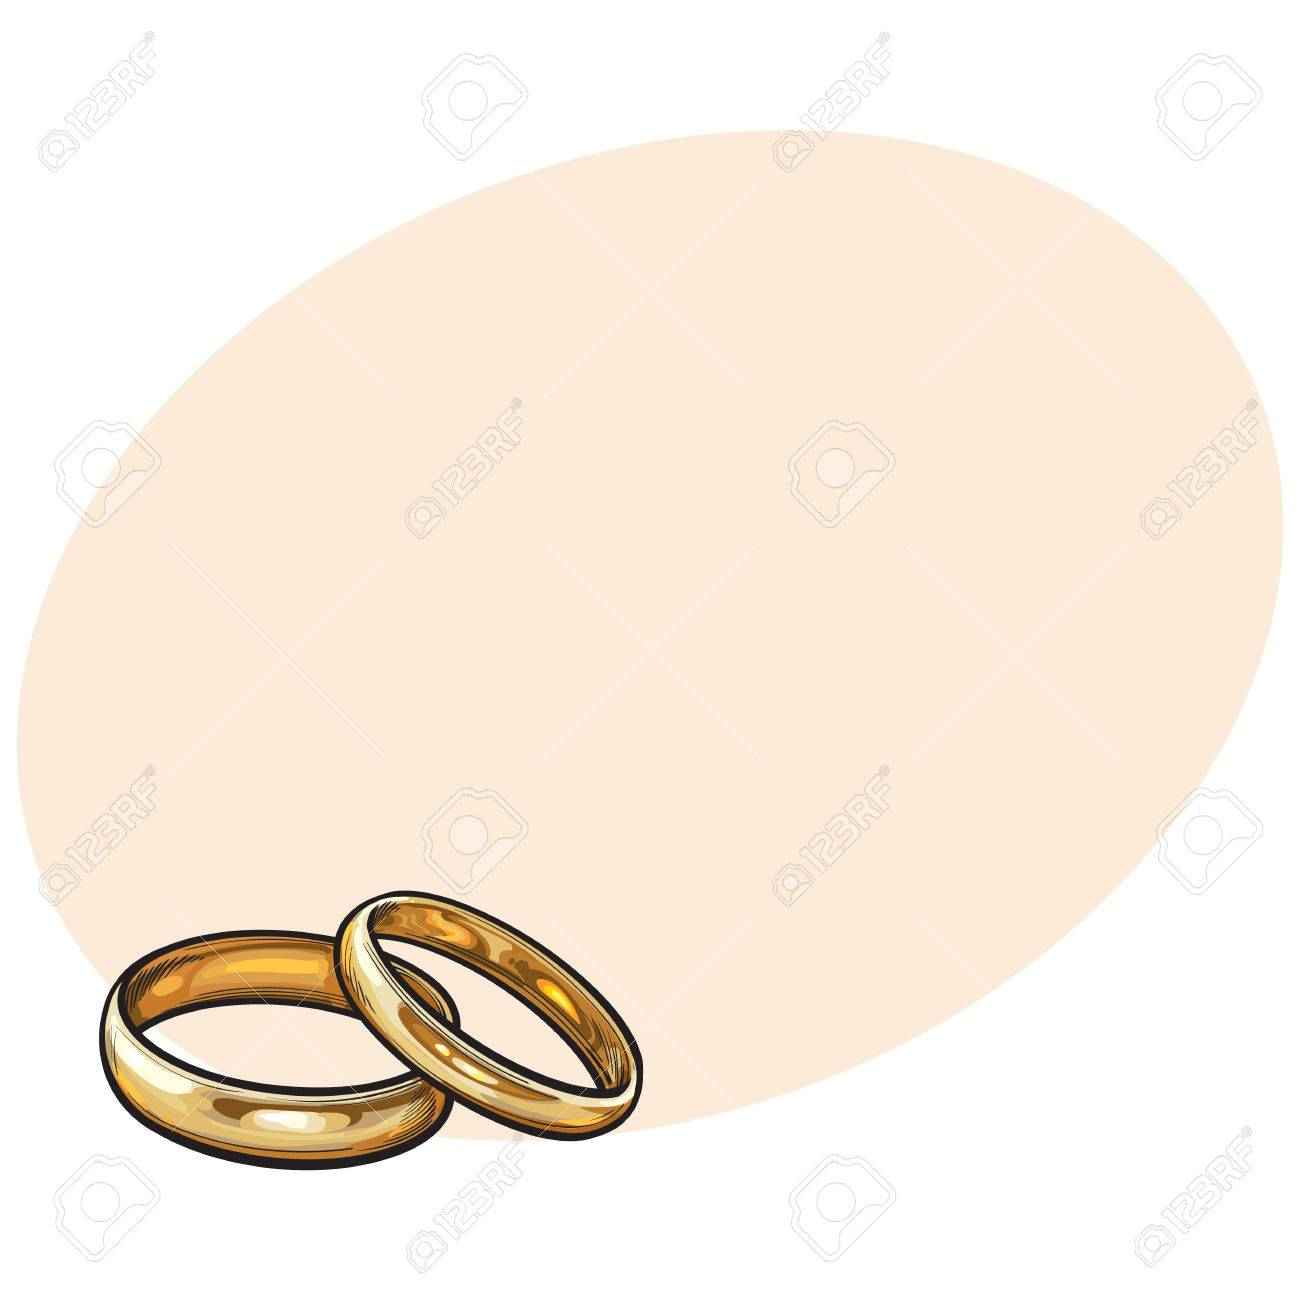 Pair Of Traditional Golden Wedding Rings Sketch Style Illustration